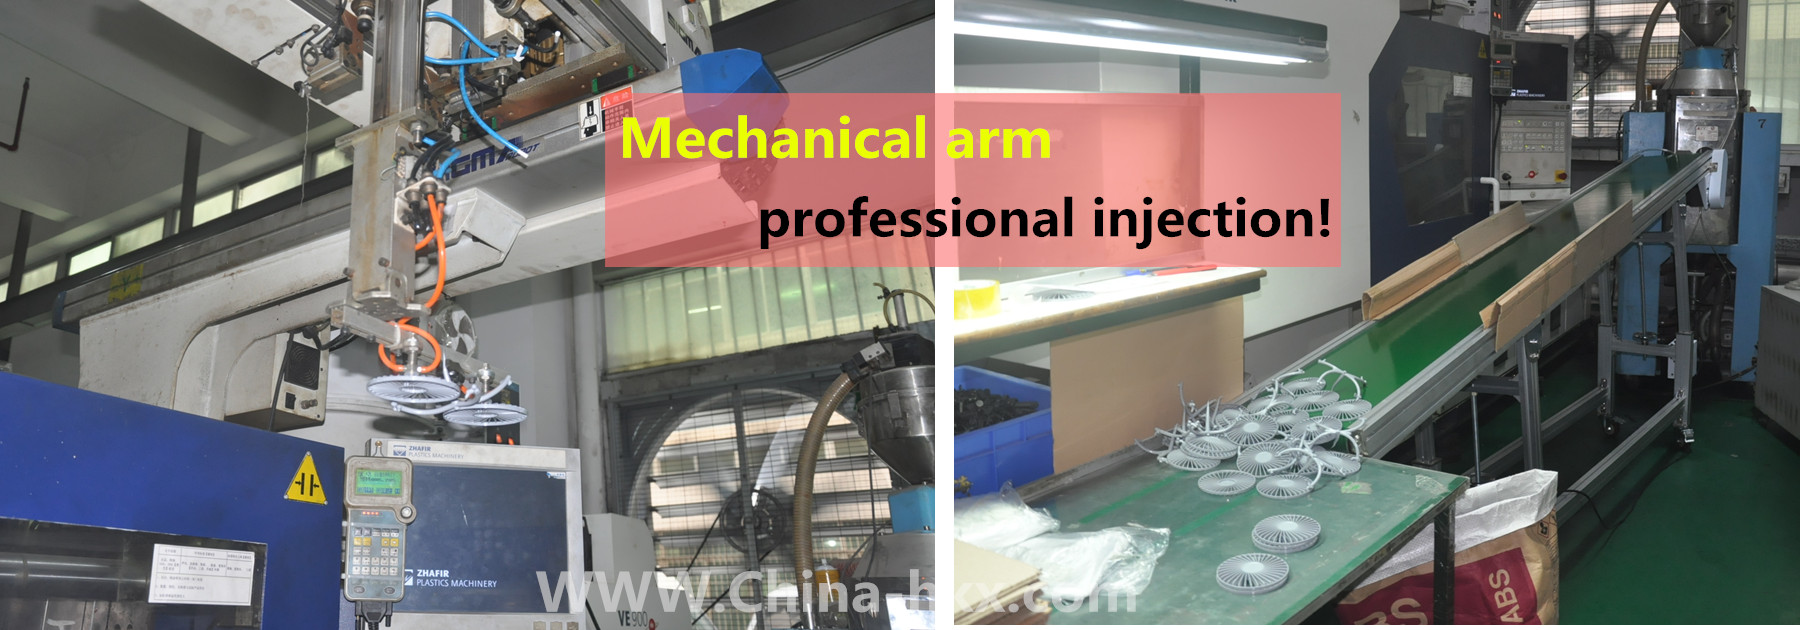 Mechanical arm professional injection